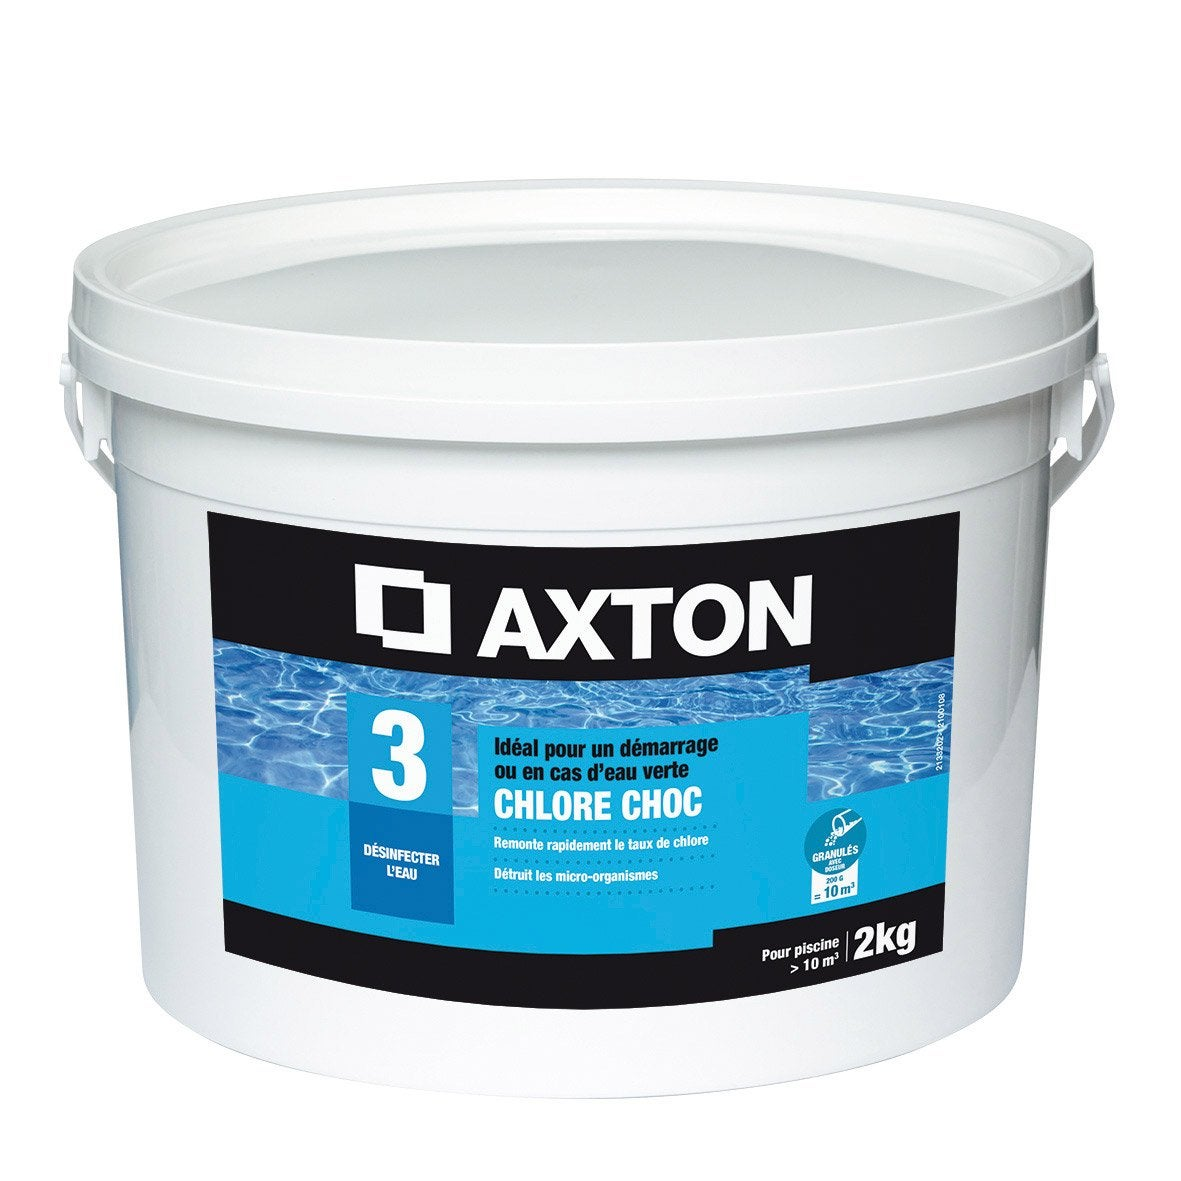 Chlore choc piscine axton granul 2 kg leroy merlin for Chlore choc piscine